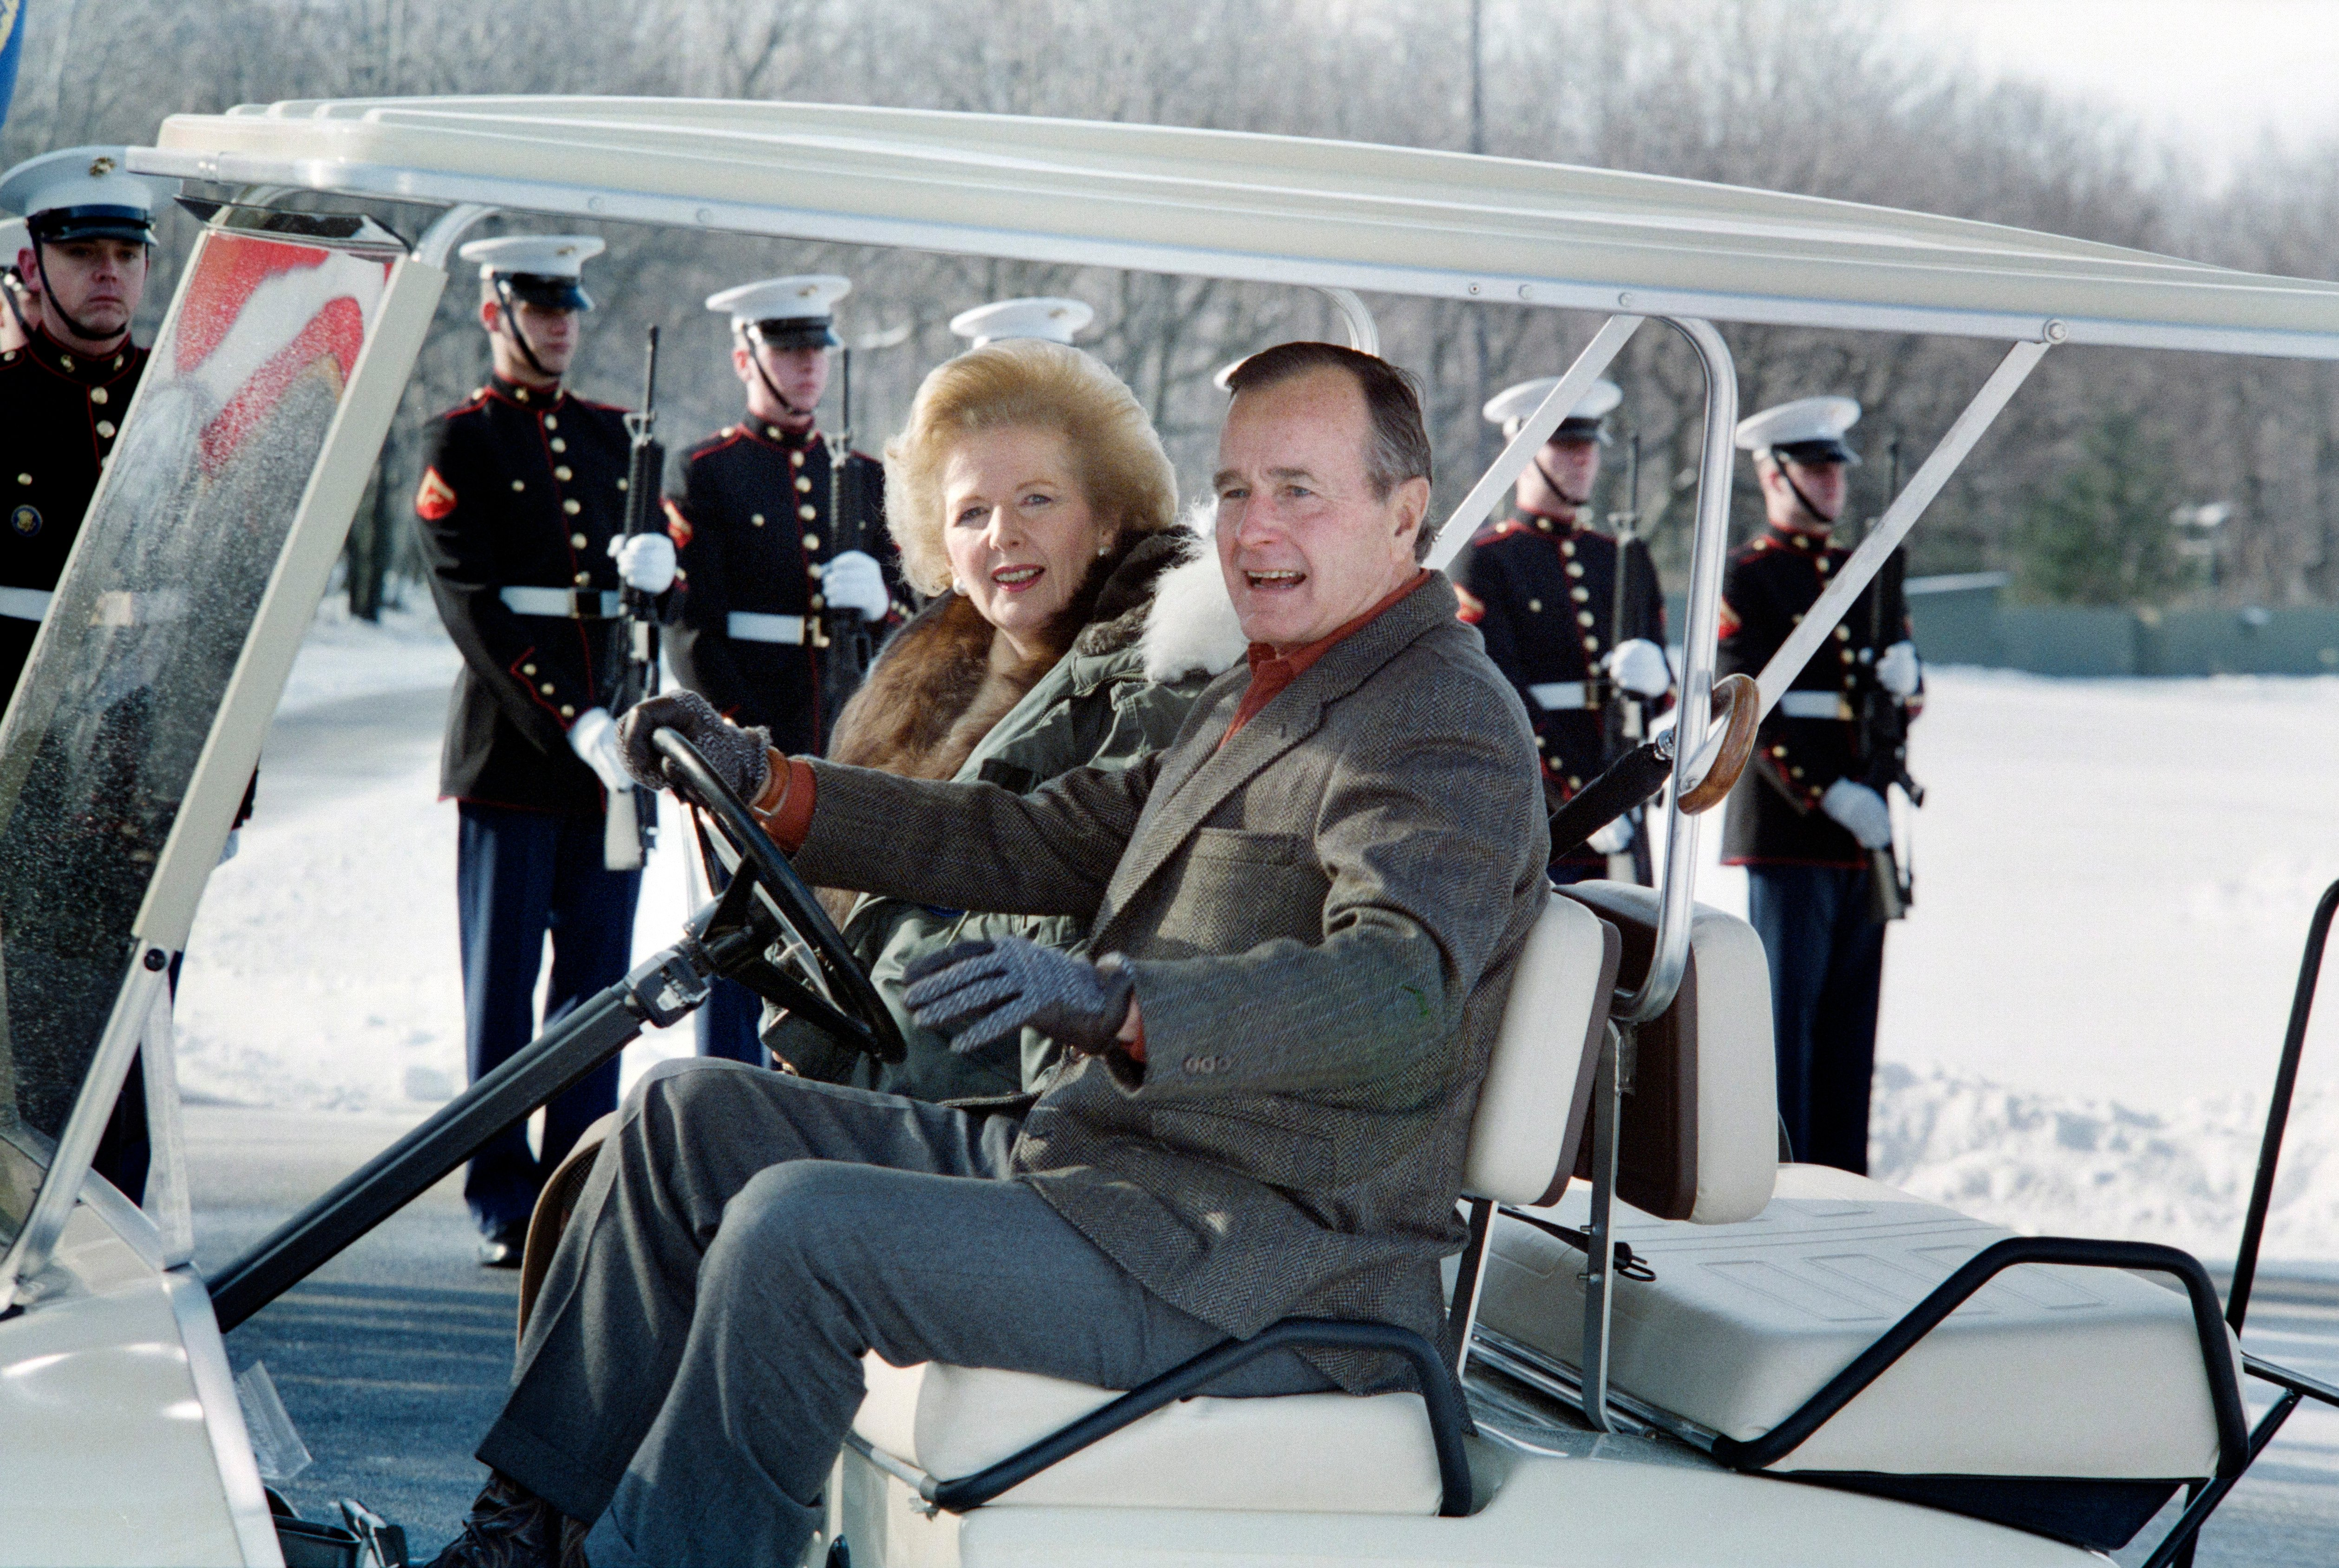 US President George Bush (R) and British Prime Minister Margaret Thatcher (L) drive away in a golf cart on November 24, 1989 from the helicopter landing zone at Camp David. Thatcher is scheduled to have a four hour meeting with the President. (Photo credit should read LUKE FRAZZA/AFP/Getty Images)